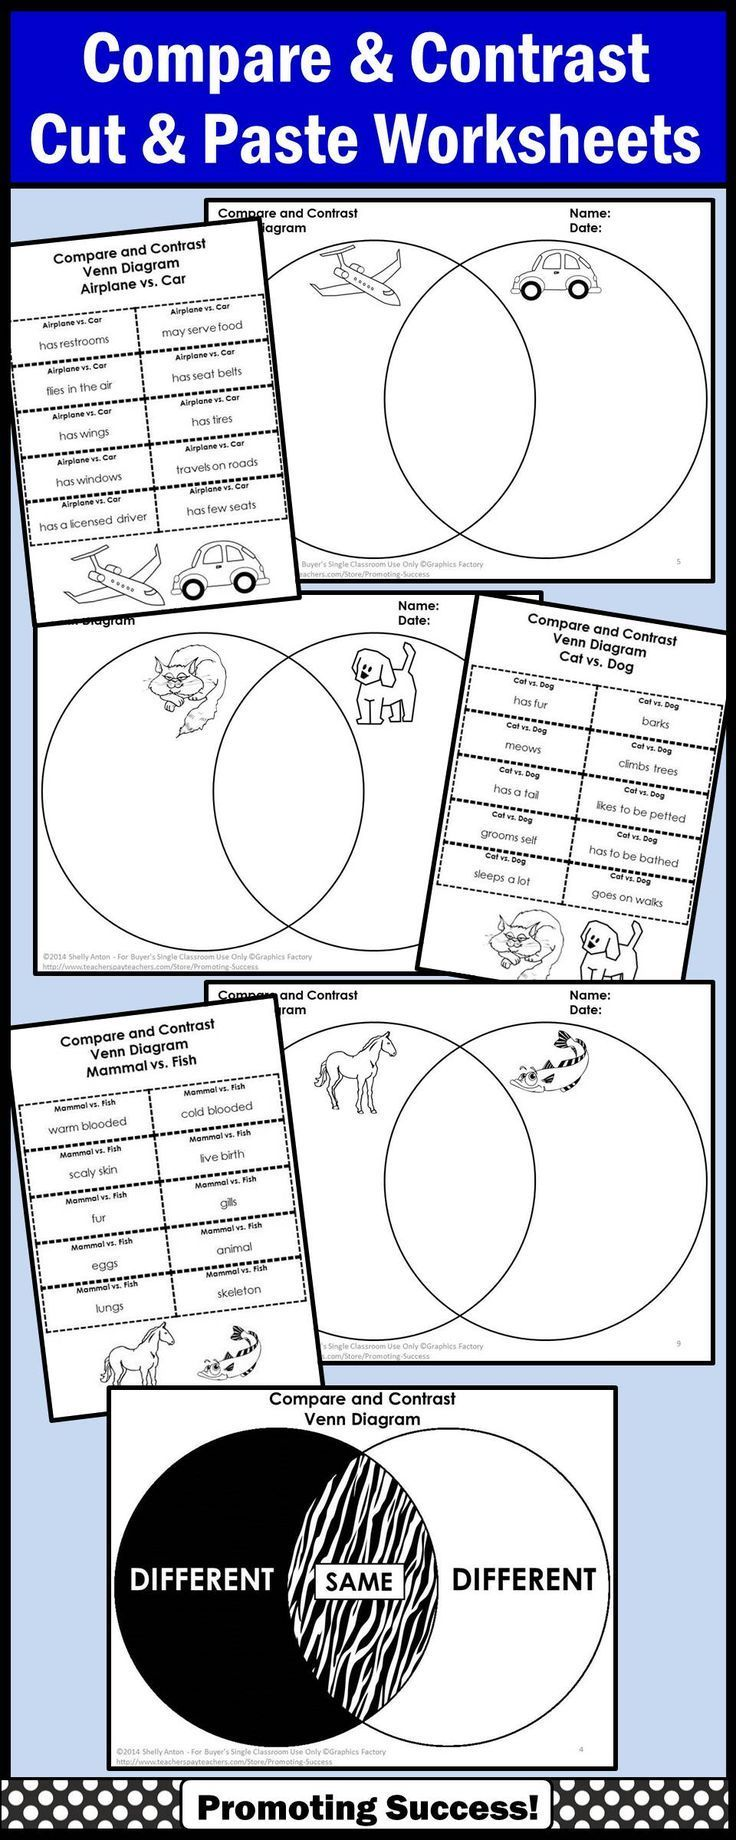 Compare and Contrast with Venn Diagrams: Students will use printable Venn diagram worksheets to compare and contrast several examples. 2nd-3rd Grade Common Core Reading Strategies https://www.teacherspayteachers.com/Product/Compare-and-Contrast-Worksheets-Venn-Diagram-Activities-1221151